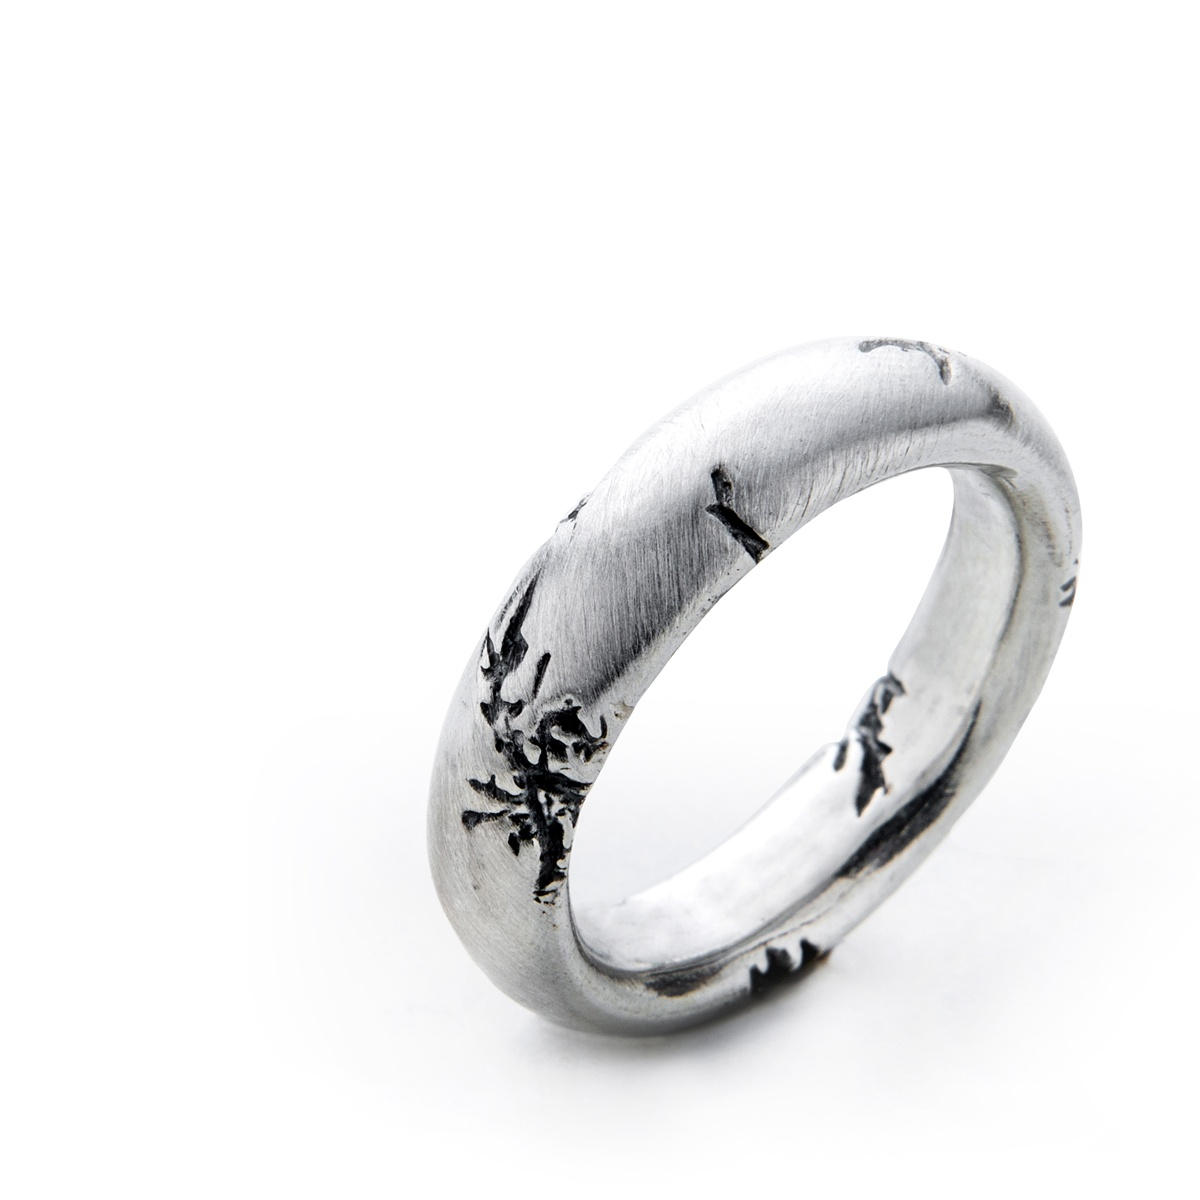 ring tungsten engagement jewellery band mens sterling wedding and carbide inlay masculine rings silver besttohave image